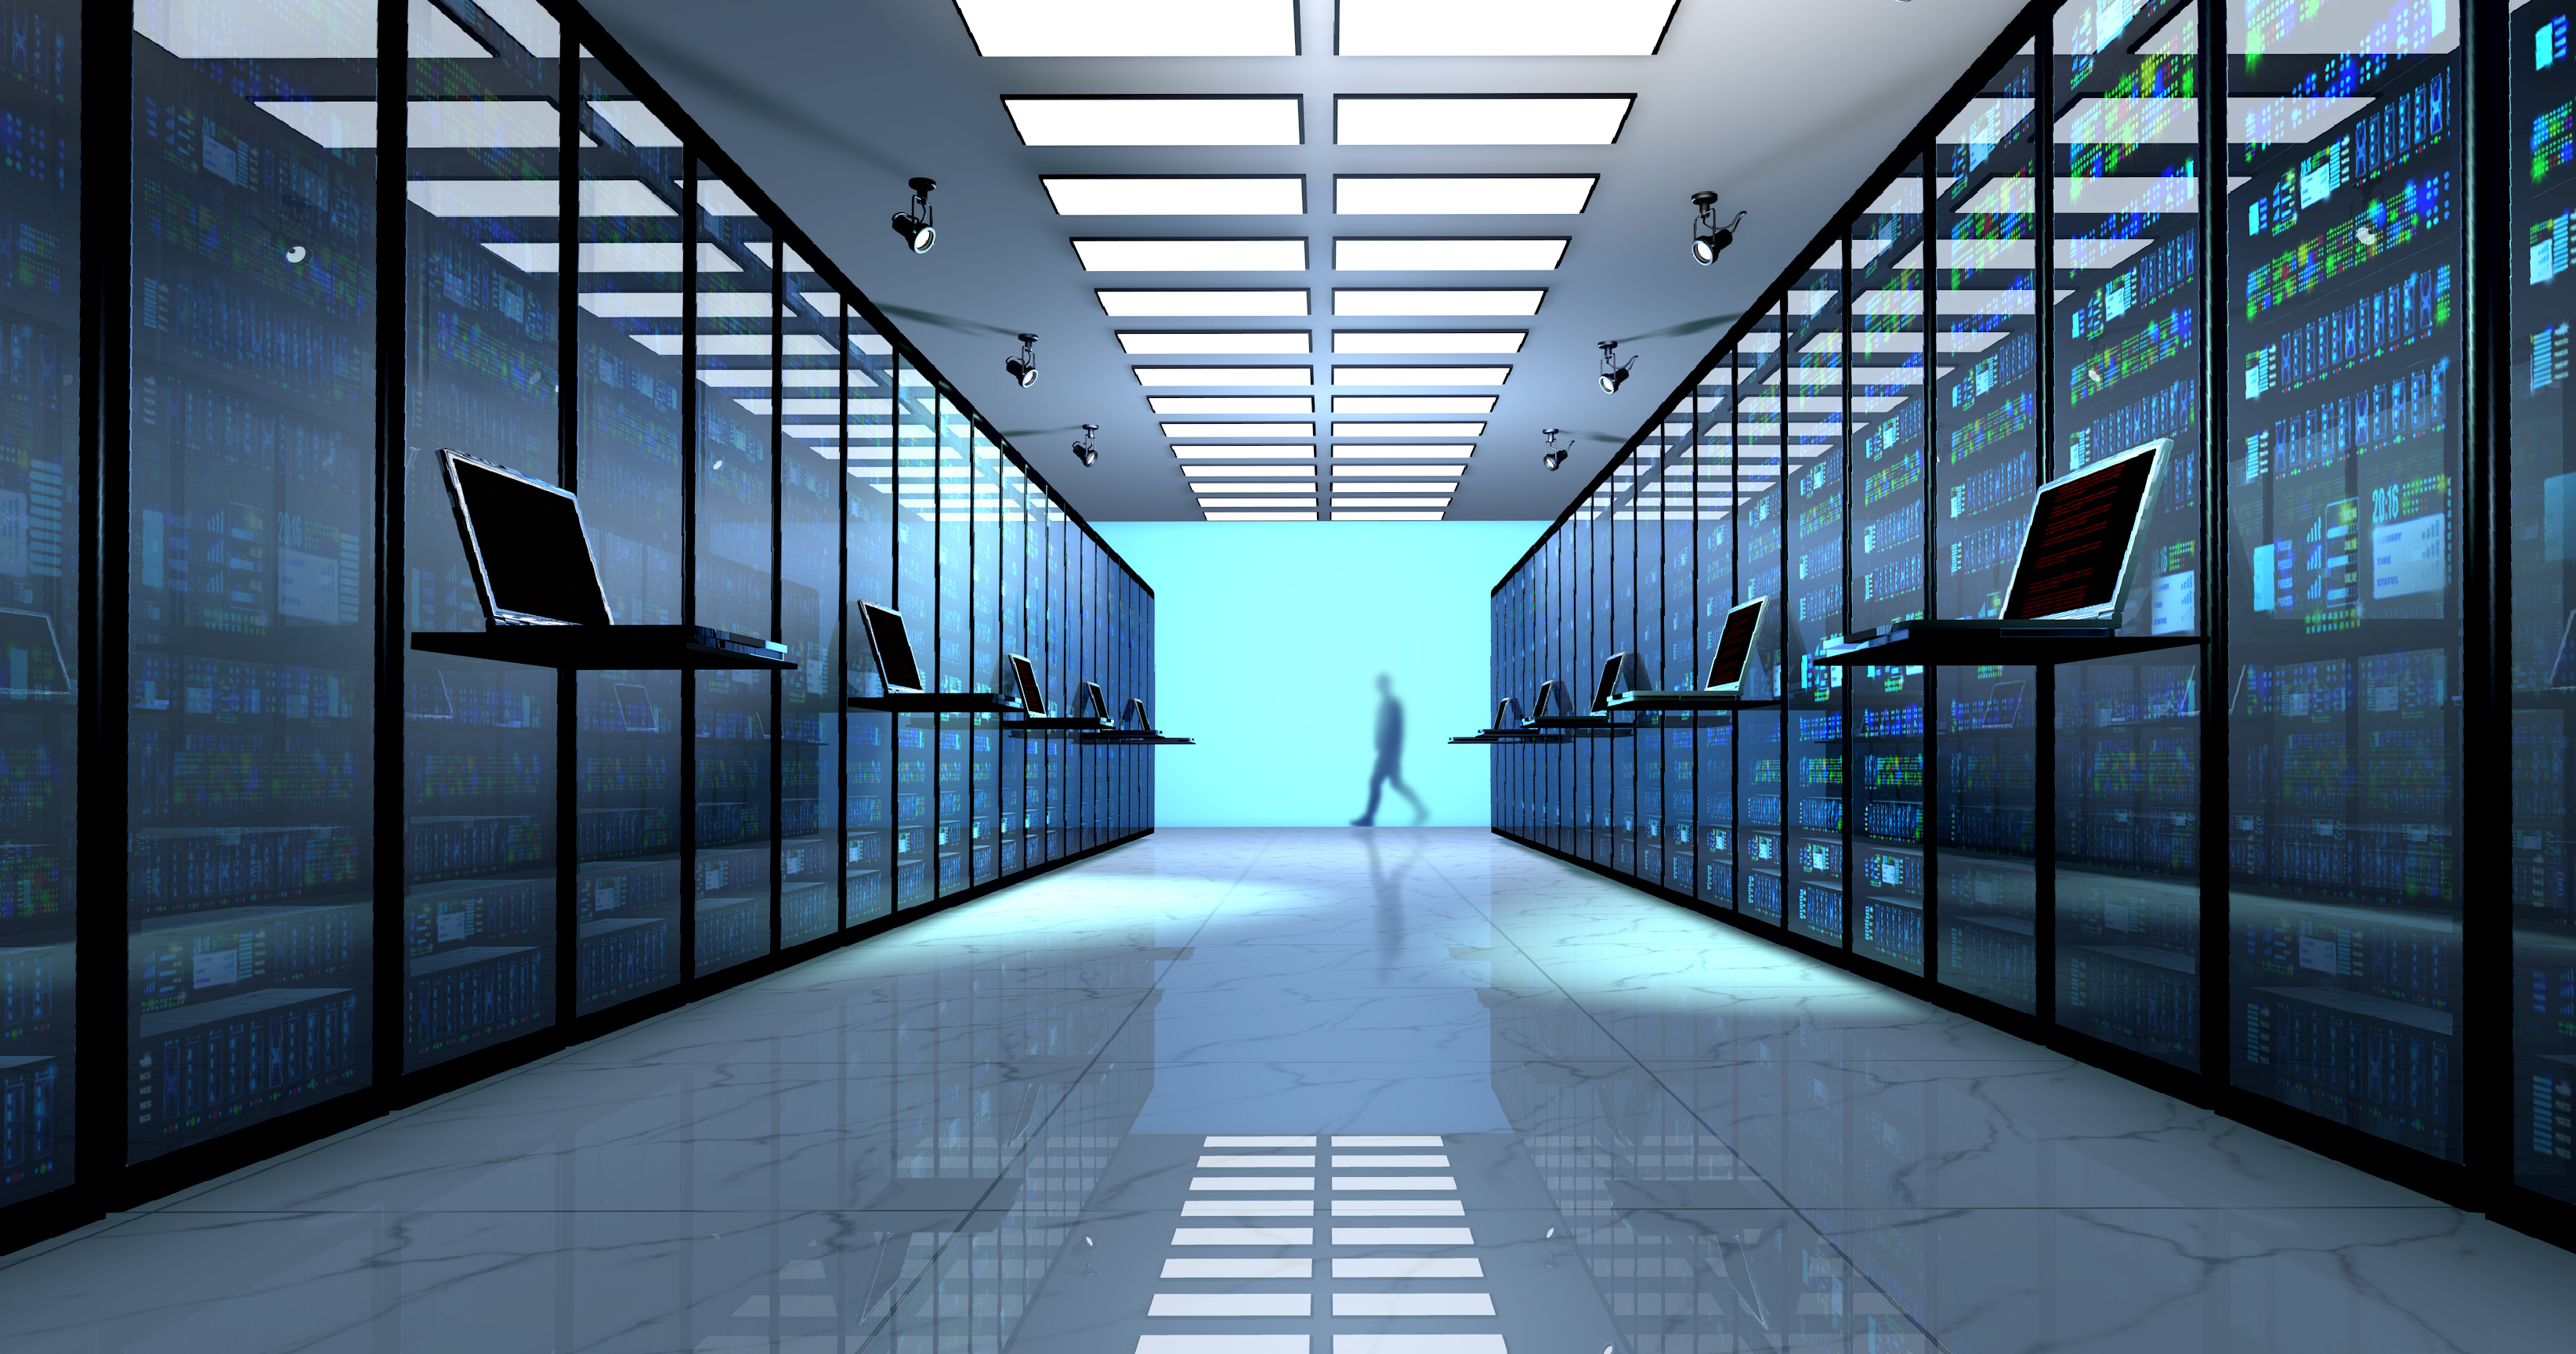 Server room in a data center: continuous compliance